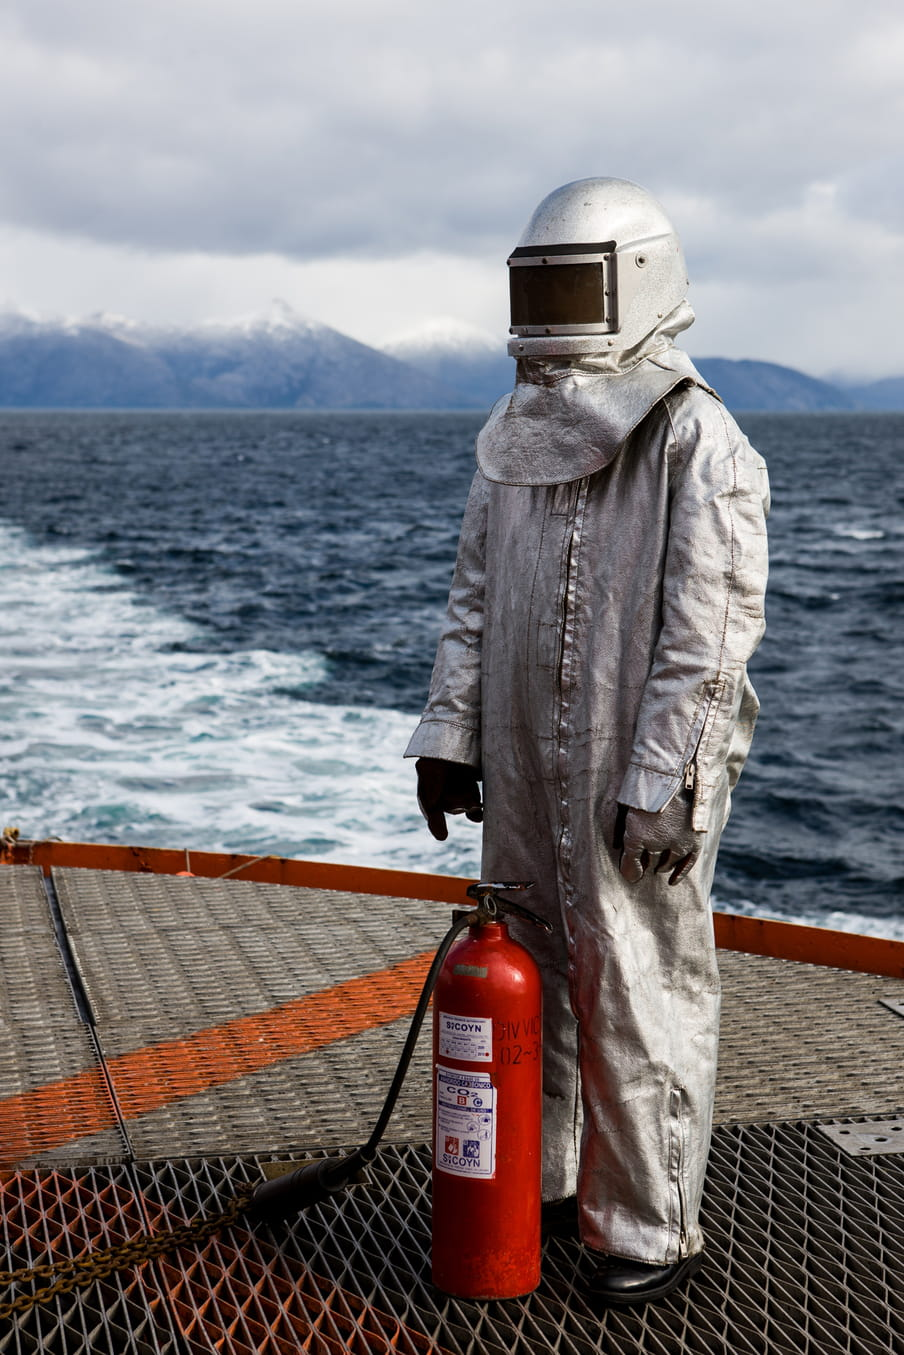 A person wearing a silver overall with helmet is standing on a boat, in front of a fire extinguisher.